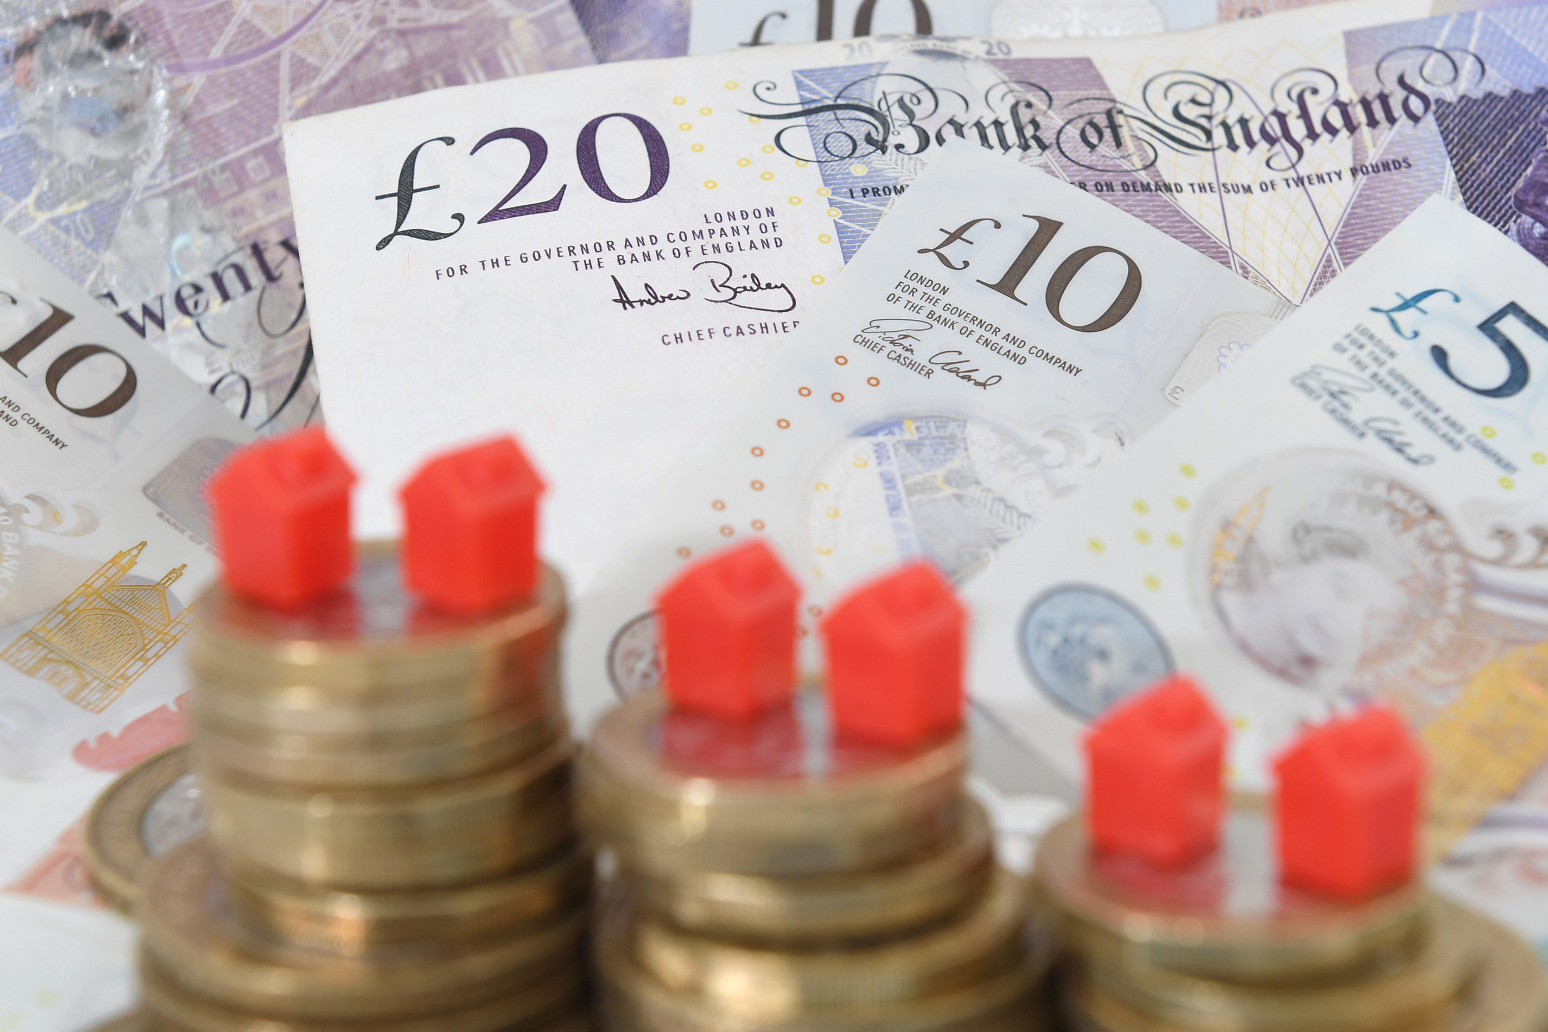 Average home 'has added £49,257 to its value over the past five years'